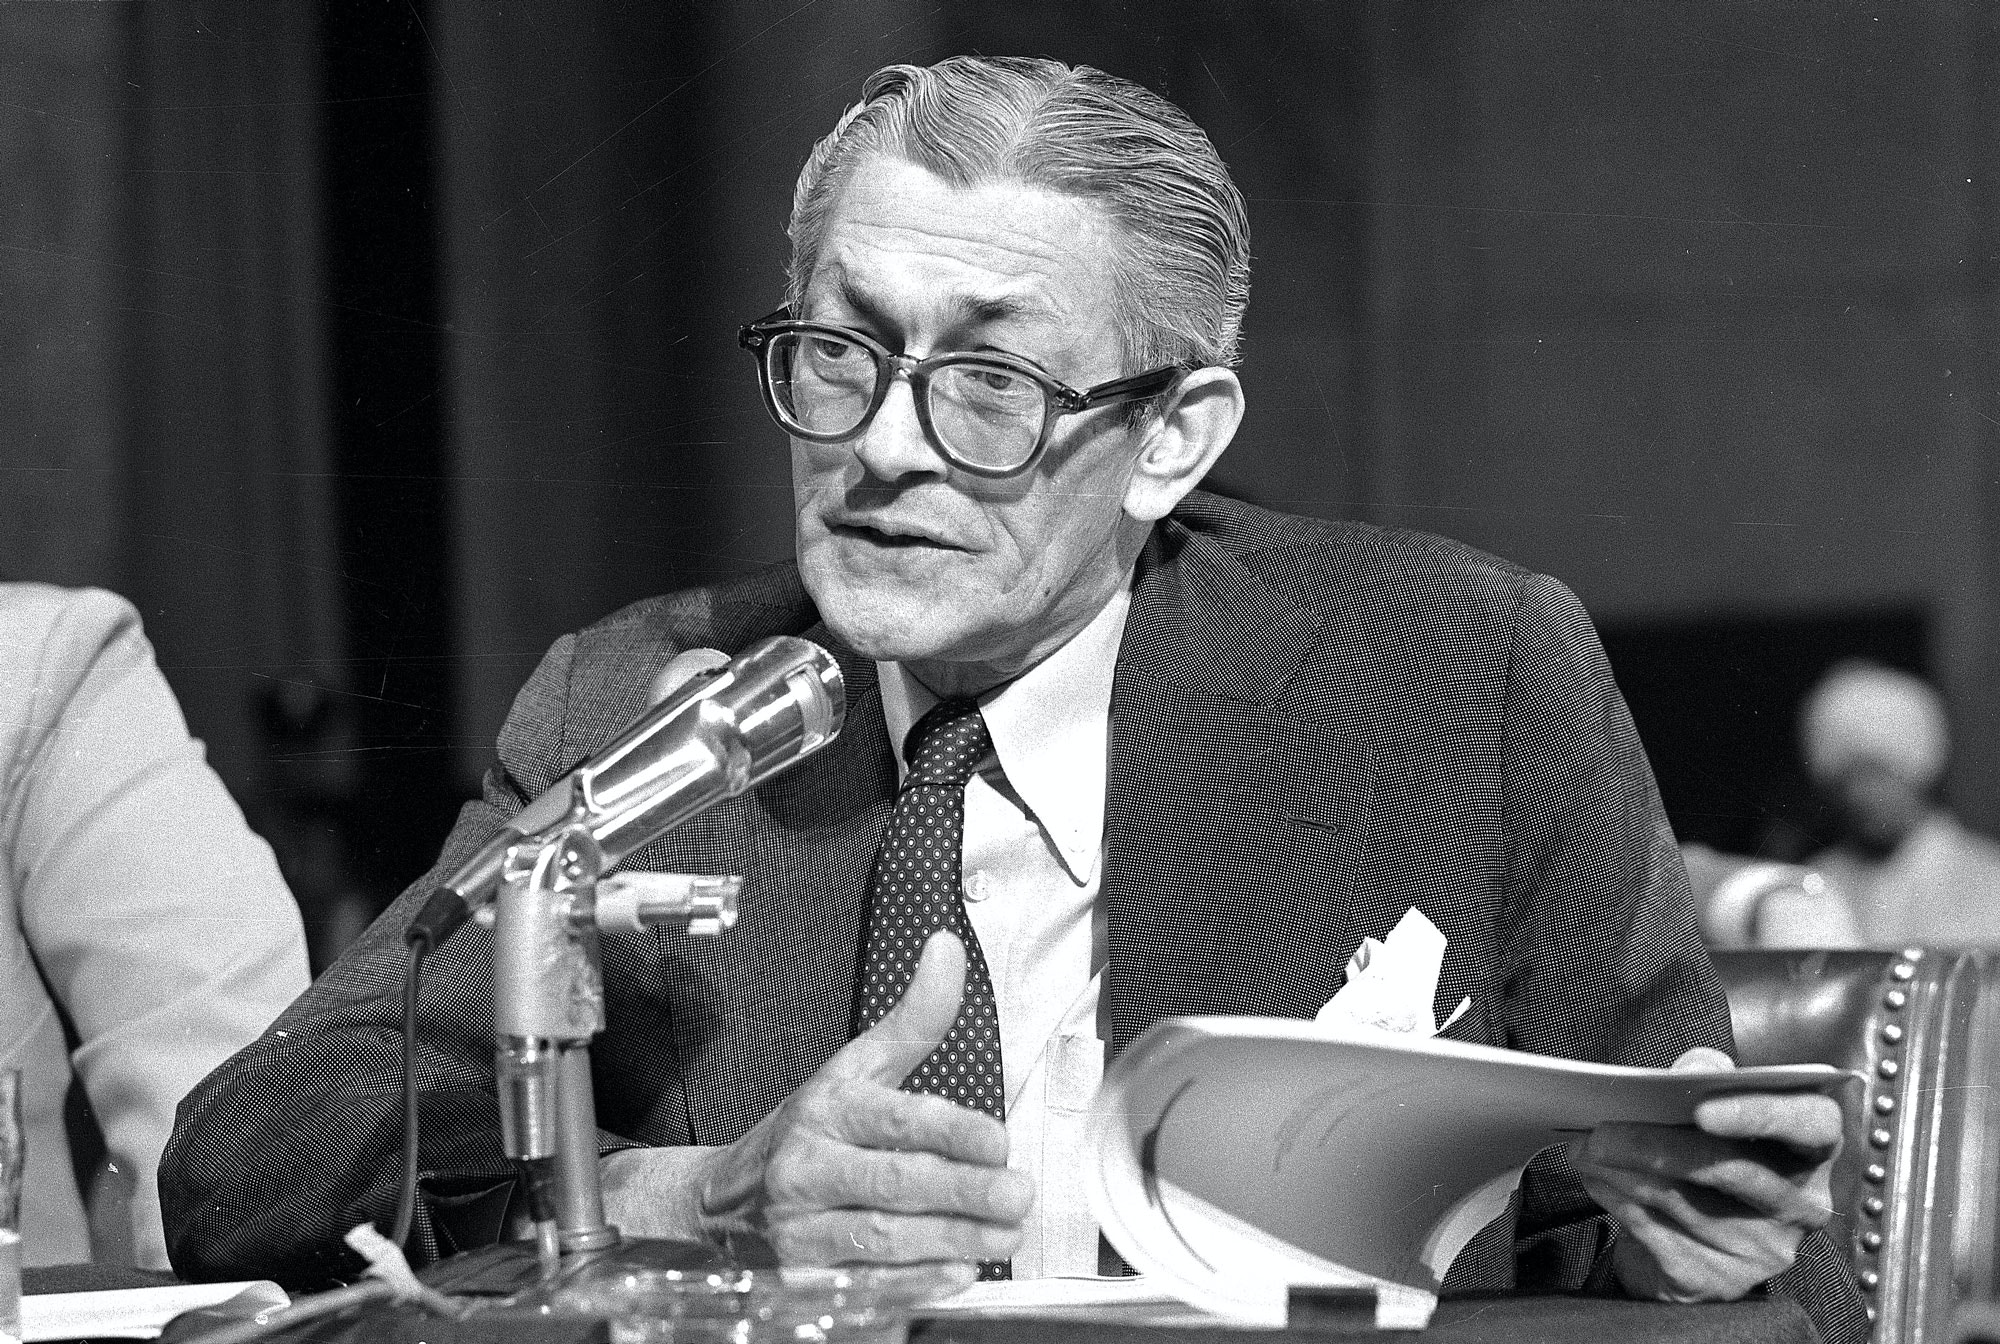 James Angleton, former Chief of Counterintelligence at the Central Intelligence Agency, answers questions before the Senate Intelligence Committee in Washington D.C. on Sept. 25, 1975.  Angleton was answering questions concerning the C.I.A.'s cover up of reading the mail of many prominent Americans including the mail of Richard M. Nixon.  (AP Photo)